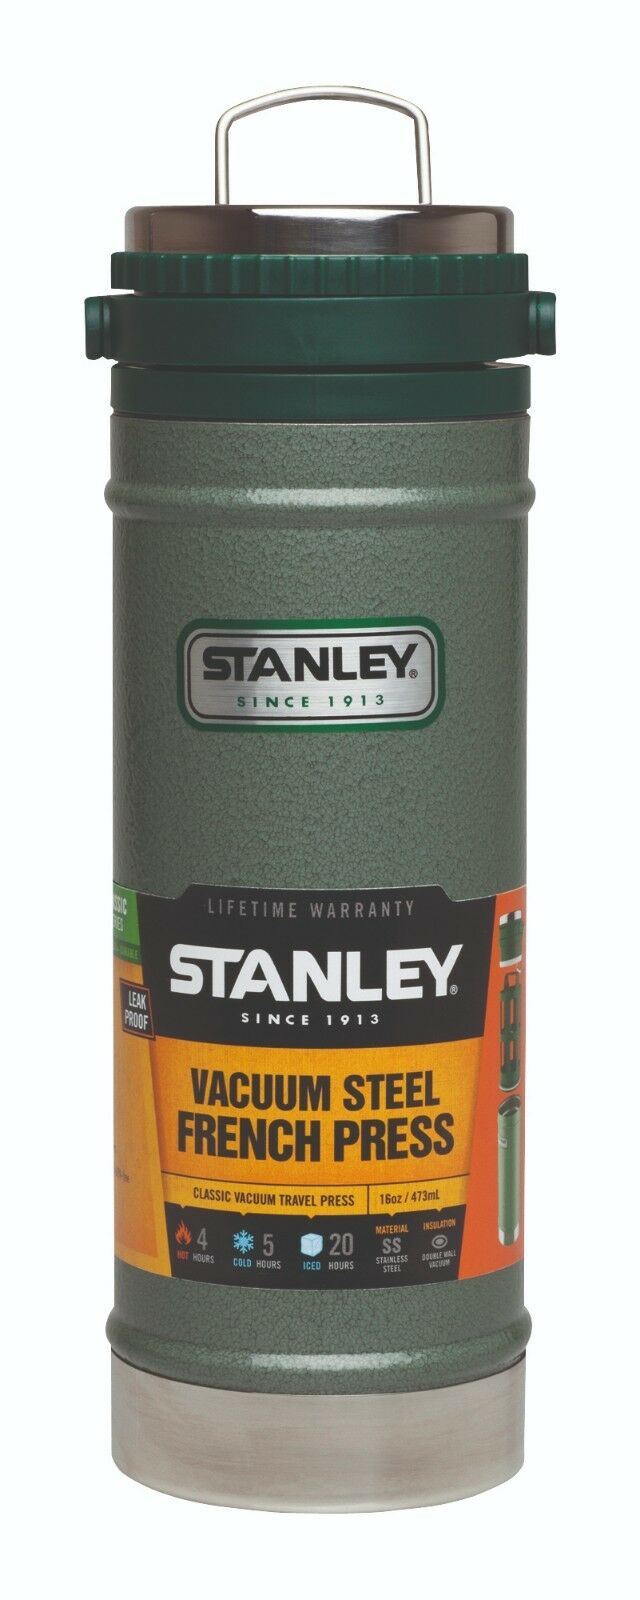 Stanley Classic Vacuum Travel Press Potable Tasse 18 8 Edelst. marteau frappe 654700